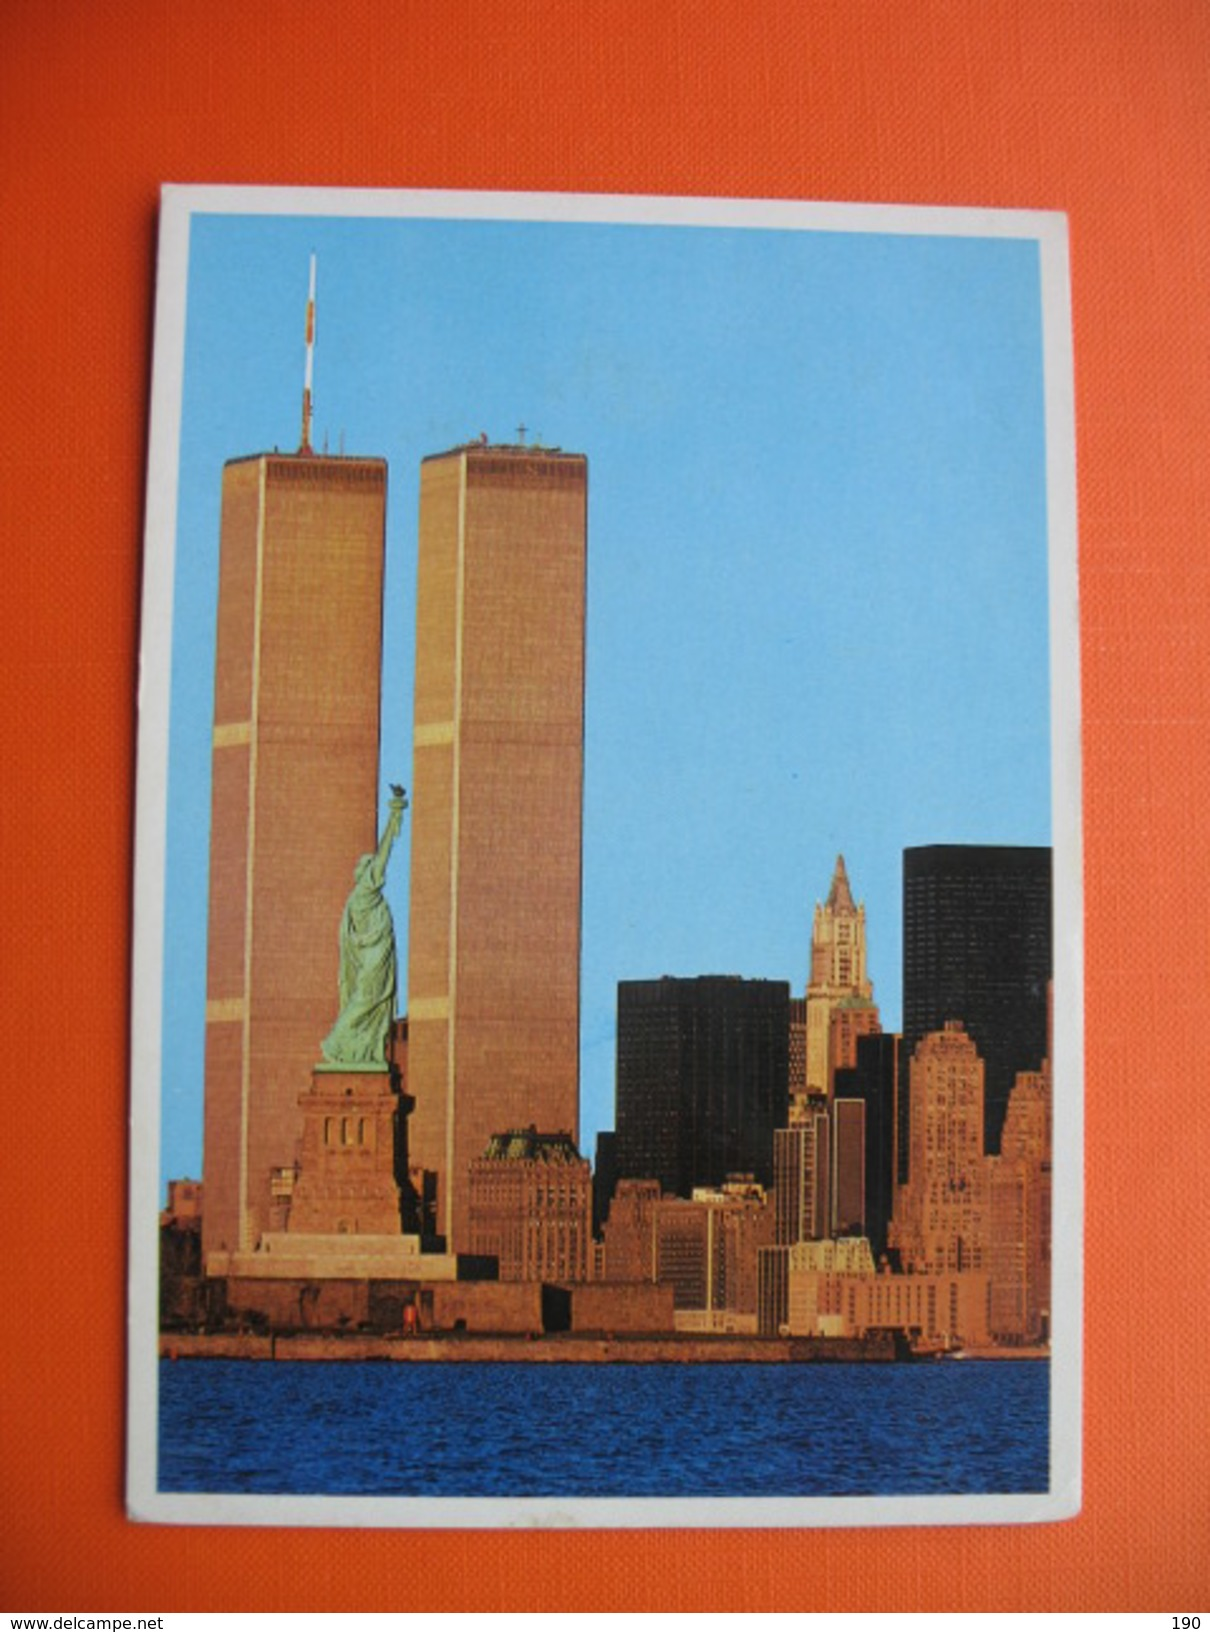 NEW YORK CITY.Statue Of Liberty And Lower Manhattan.Skyline In New York Harbor.World Trade Center. - Monuments